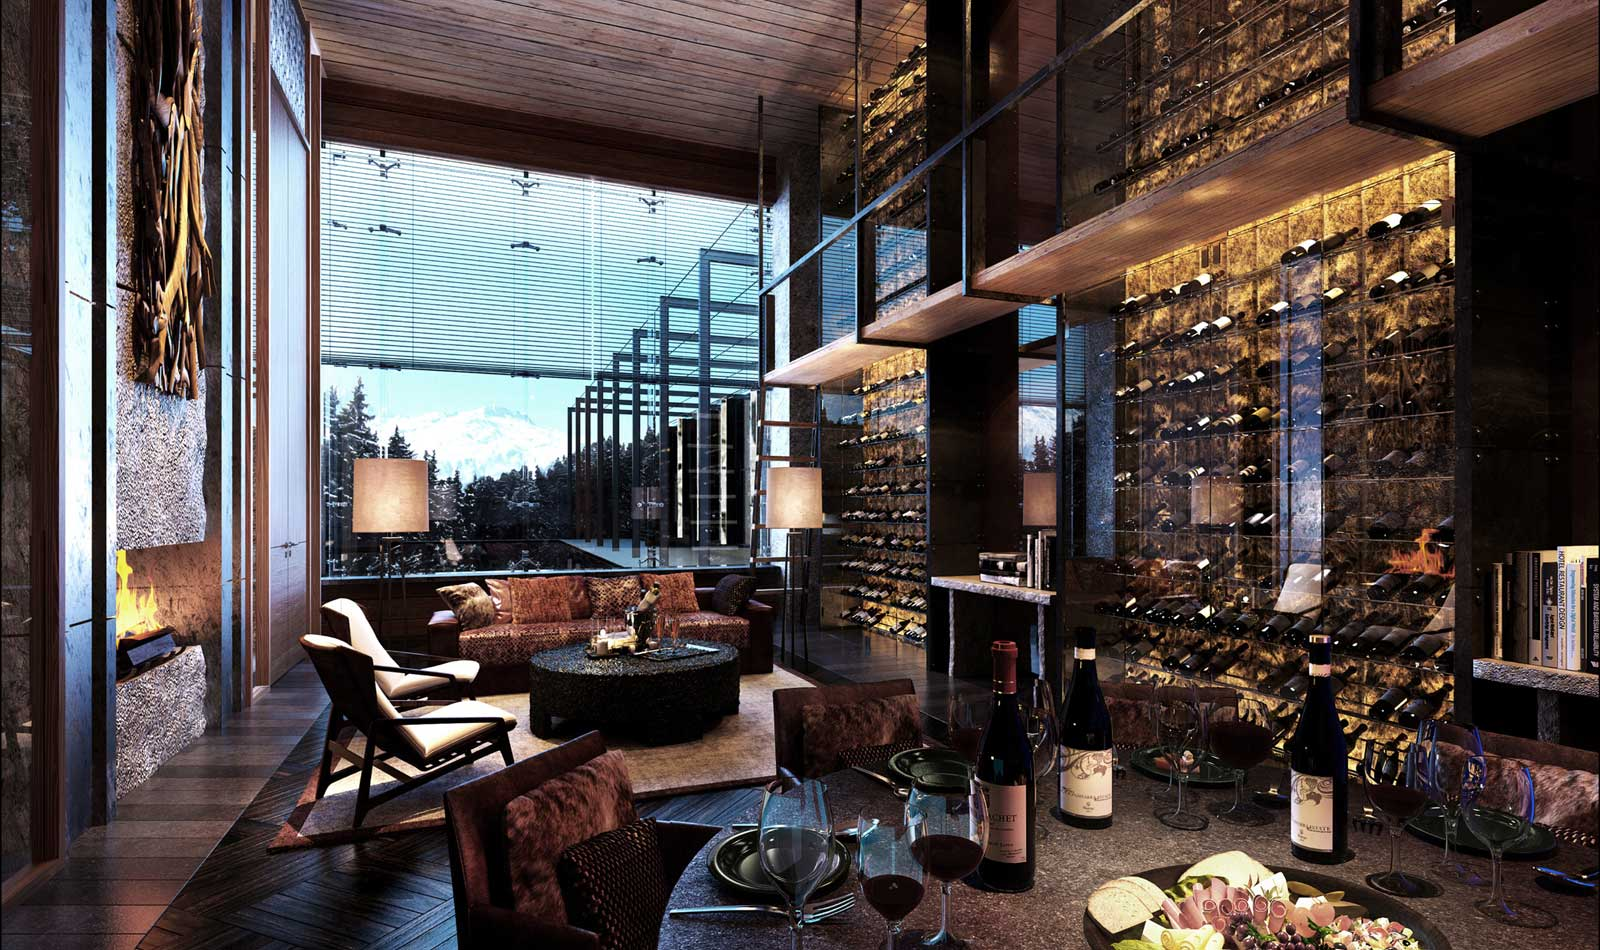 Vipp Küchen Schweiz Luxury Brand The Chedi Arrives In Switzerland